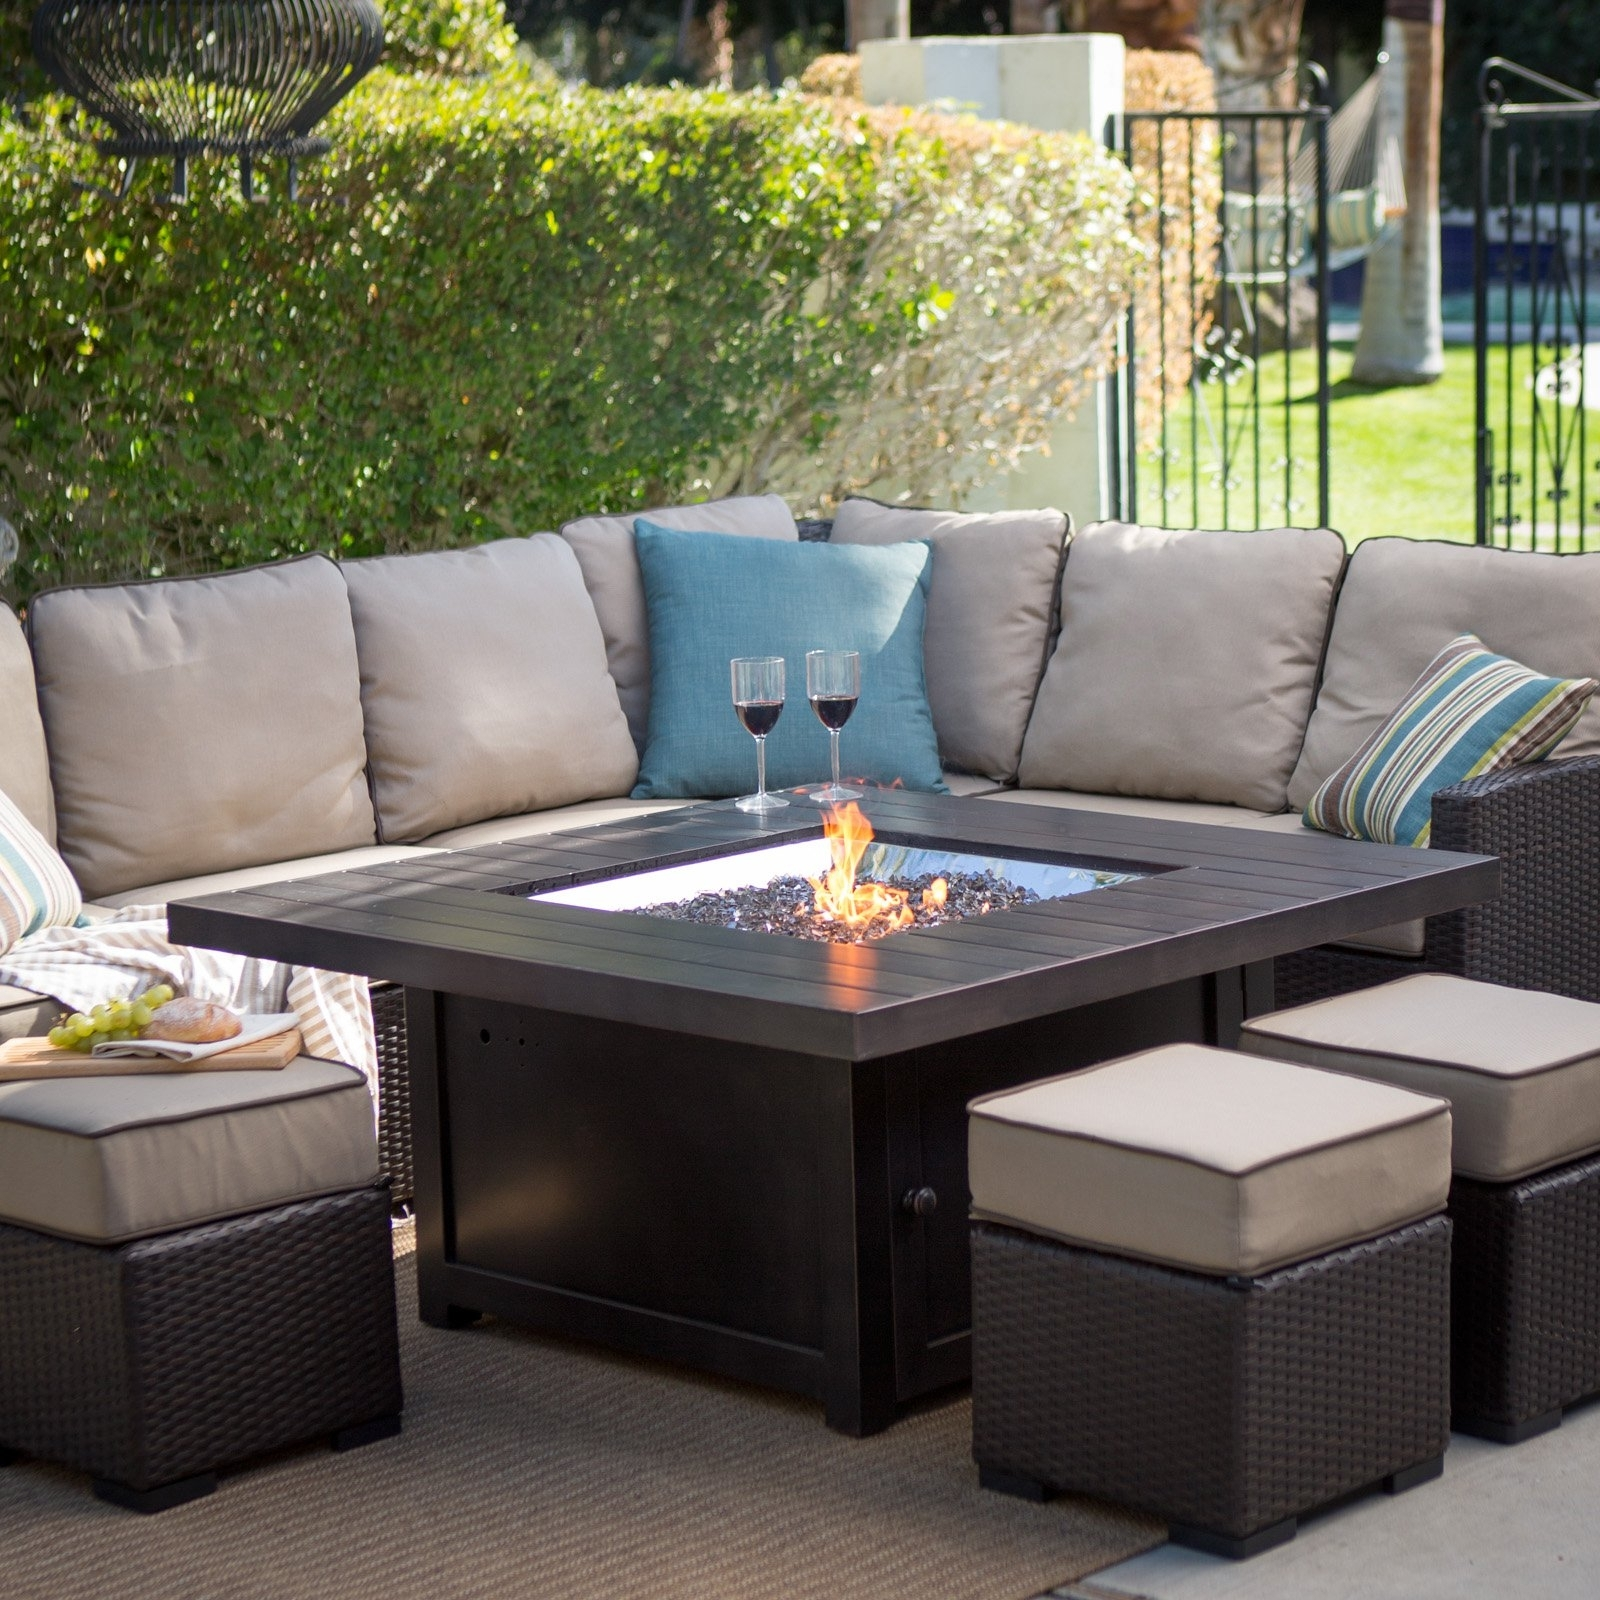 Furniture: High Quality Patio Furniture Columbus Ohio And Fire Pit In Trendy Patio Furniture Conversation Sets With Fire Pit (View 13 of 20)